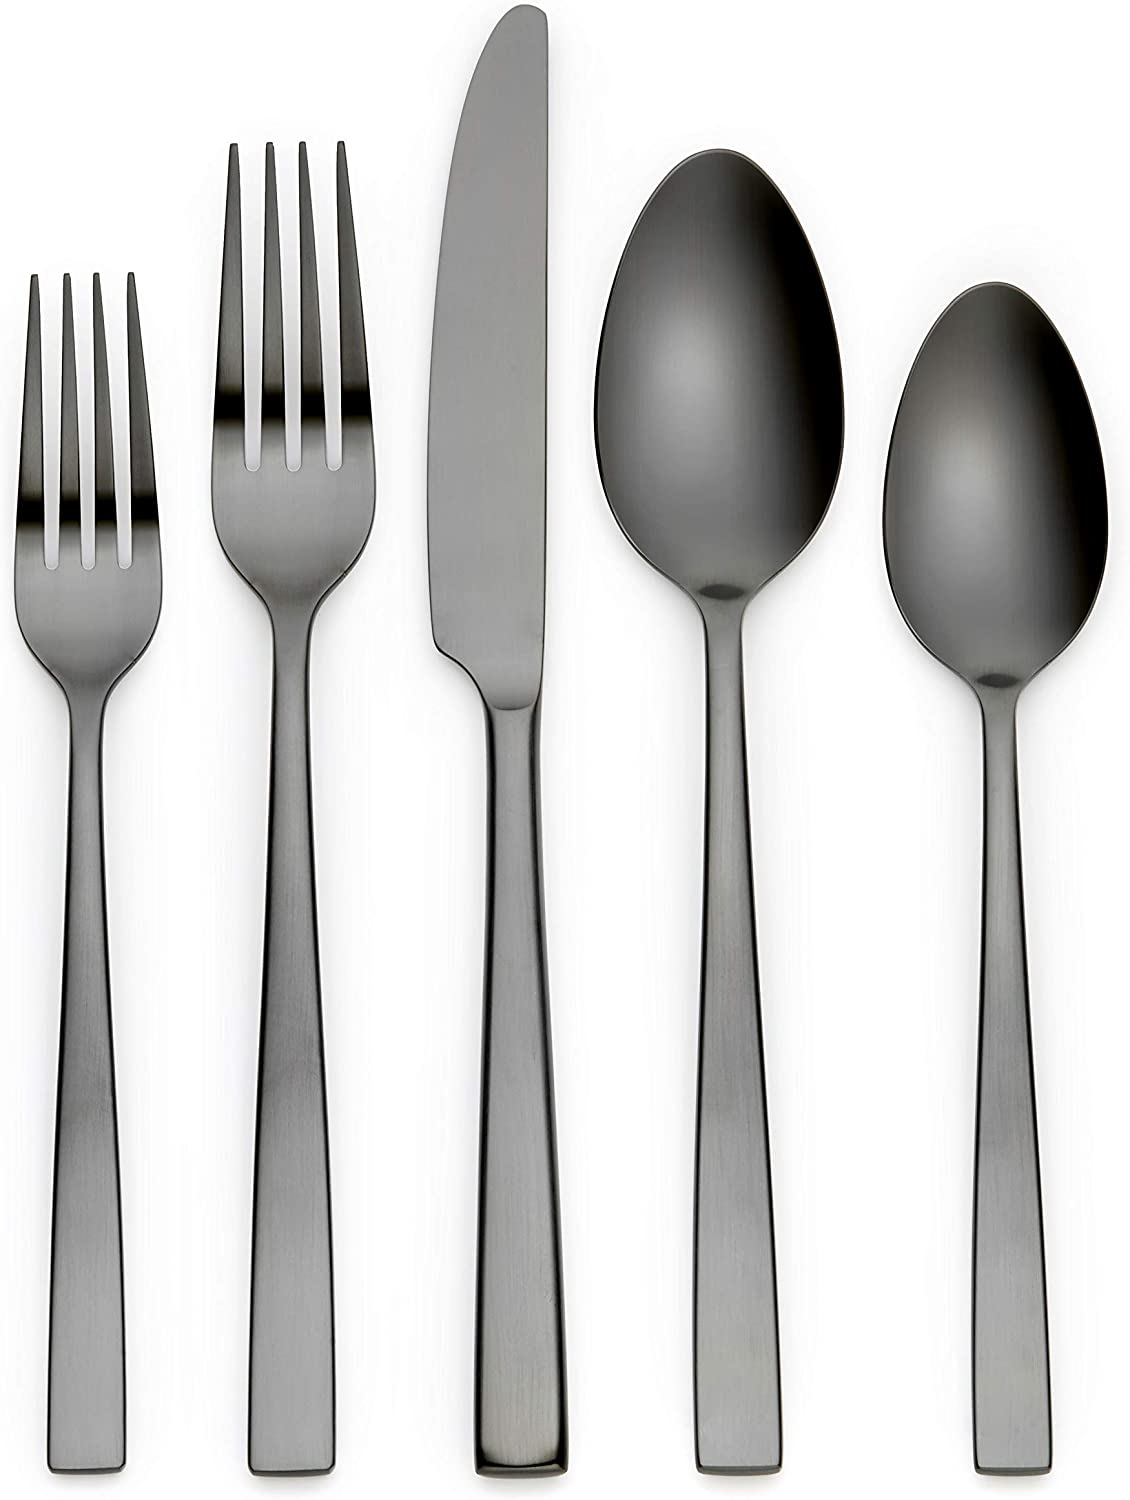 Kathryn Silver 20-Piece Flatware Set, Service for 4 (Matte Black)